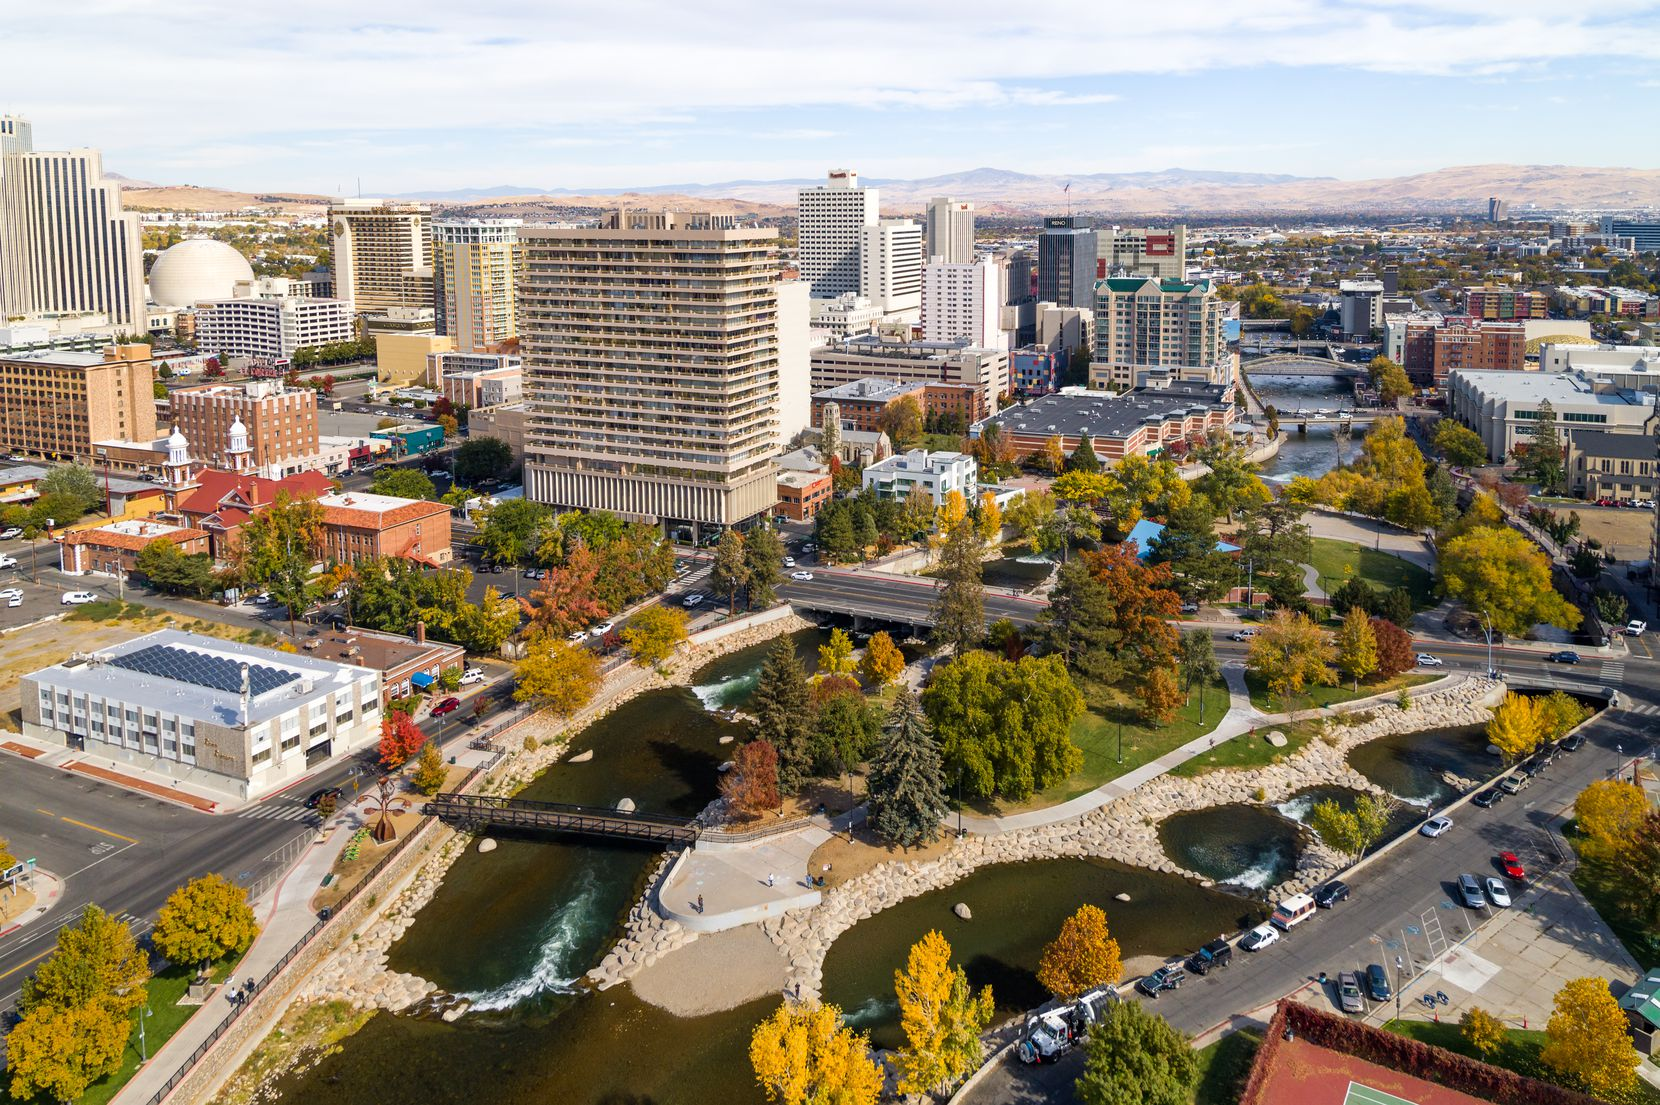 From a number of culinary experiences to exciting resort casinos, the vibrant city of Reno has much to explore.